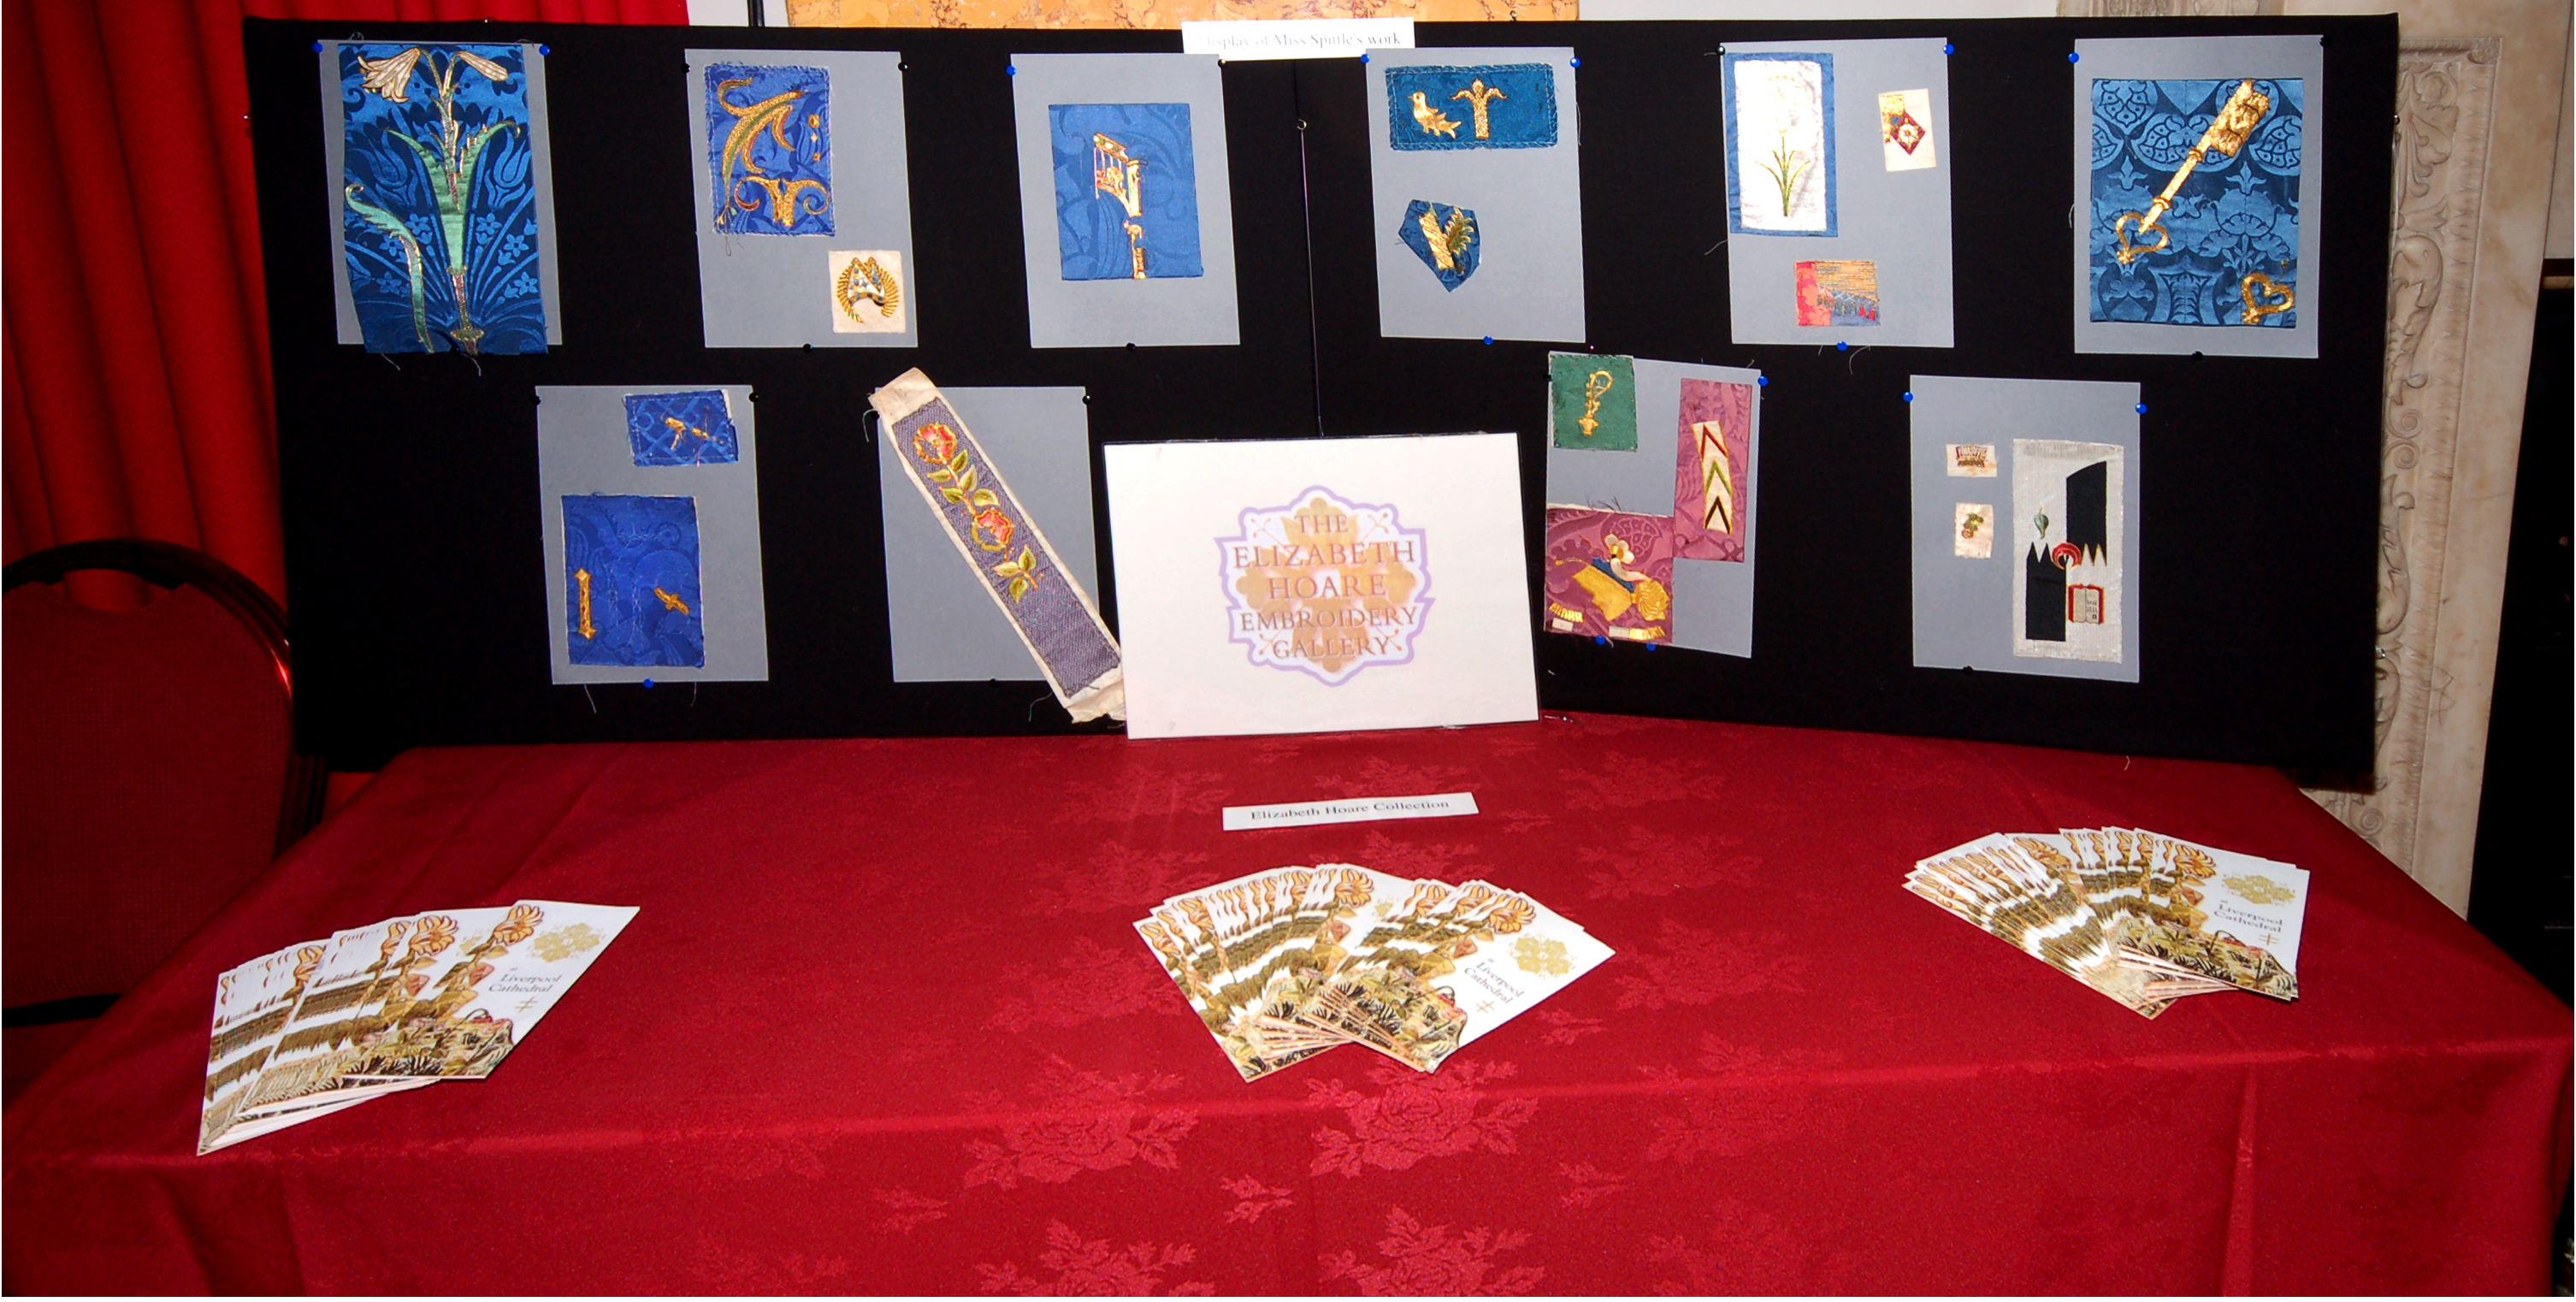 Display of embroidery from Elizabeth Hoare Gallery at NW Regional Day 2008 Liverpool Town Hall